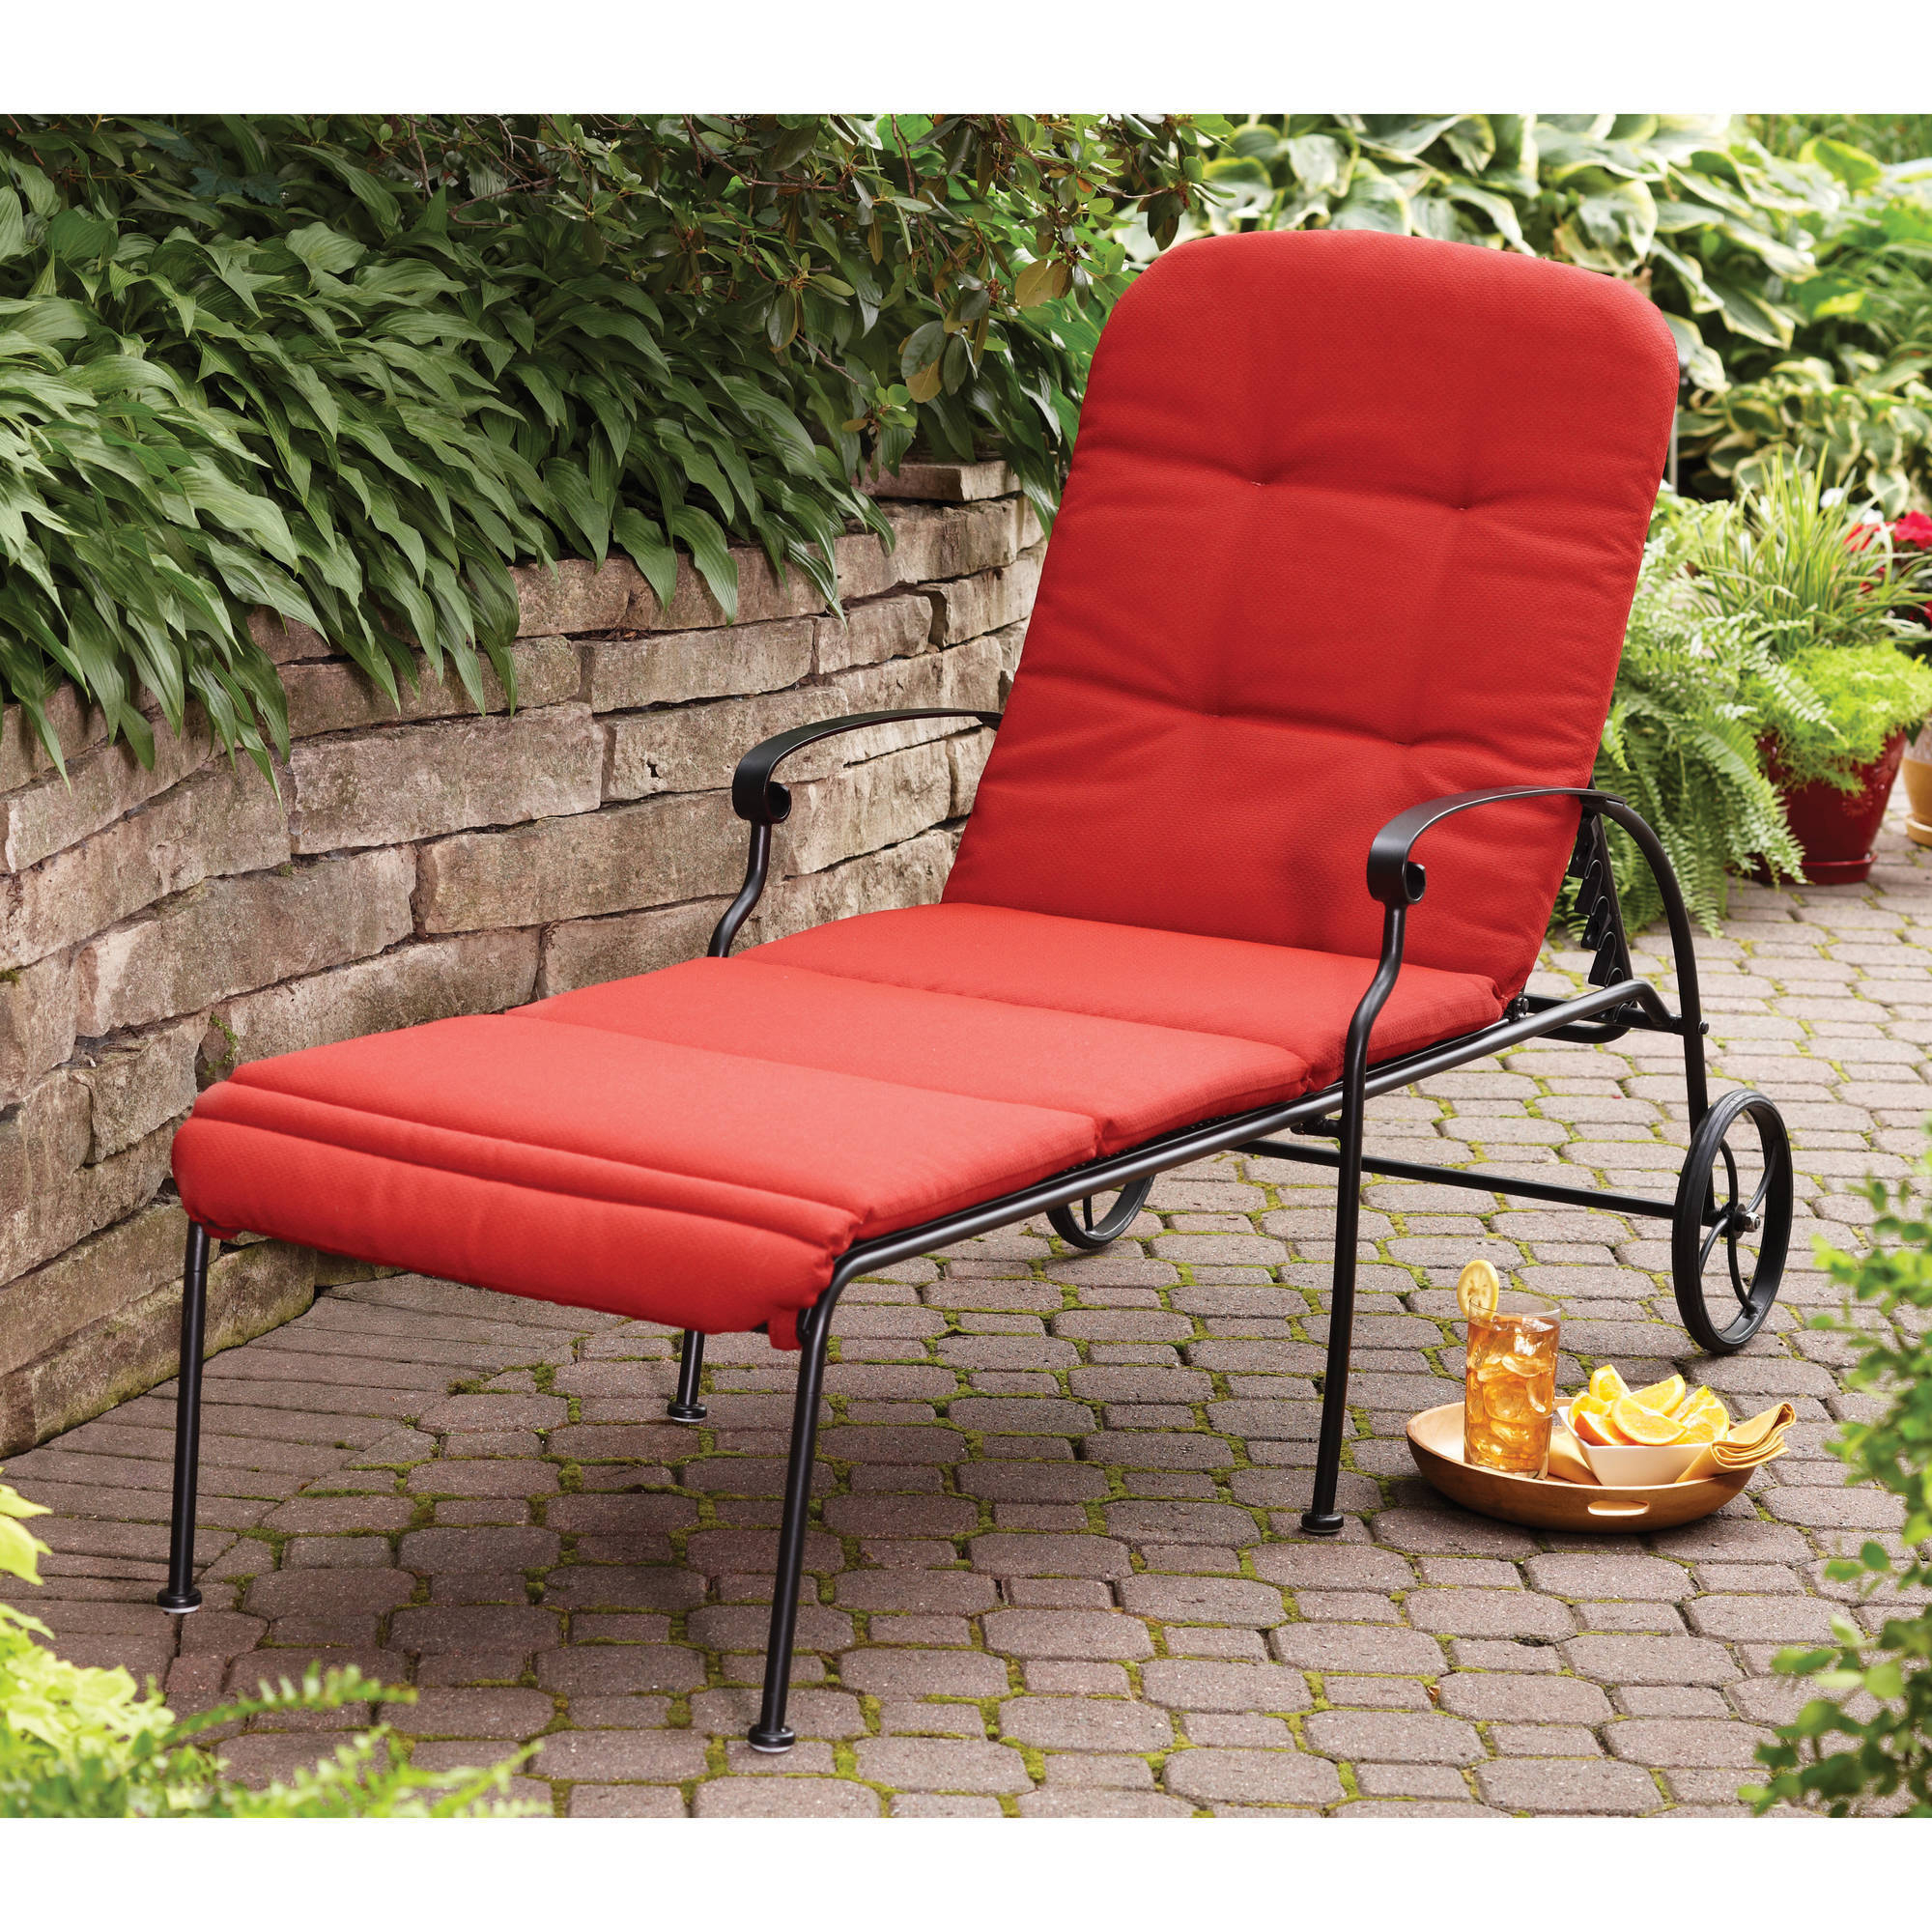 Favorite Plastic Chaise Lounges W/ Wheels For Better Homes & Gardens Clayton Court Chaise Lounge With Wheels, Red (View 5 of 25)